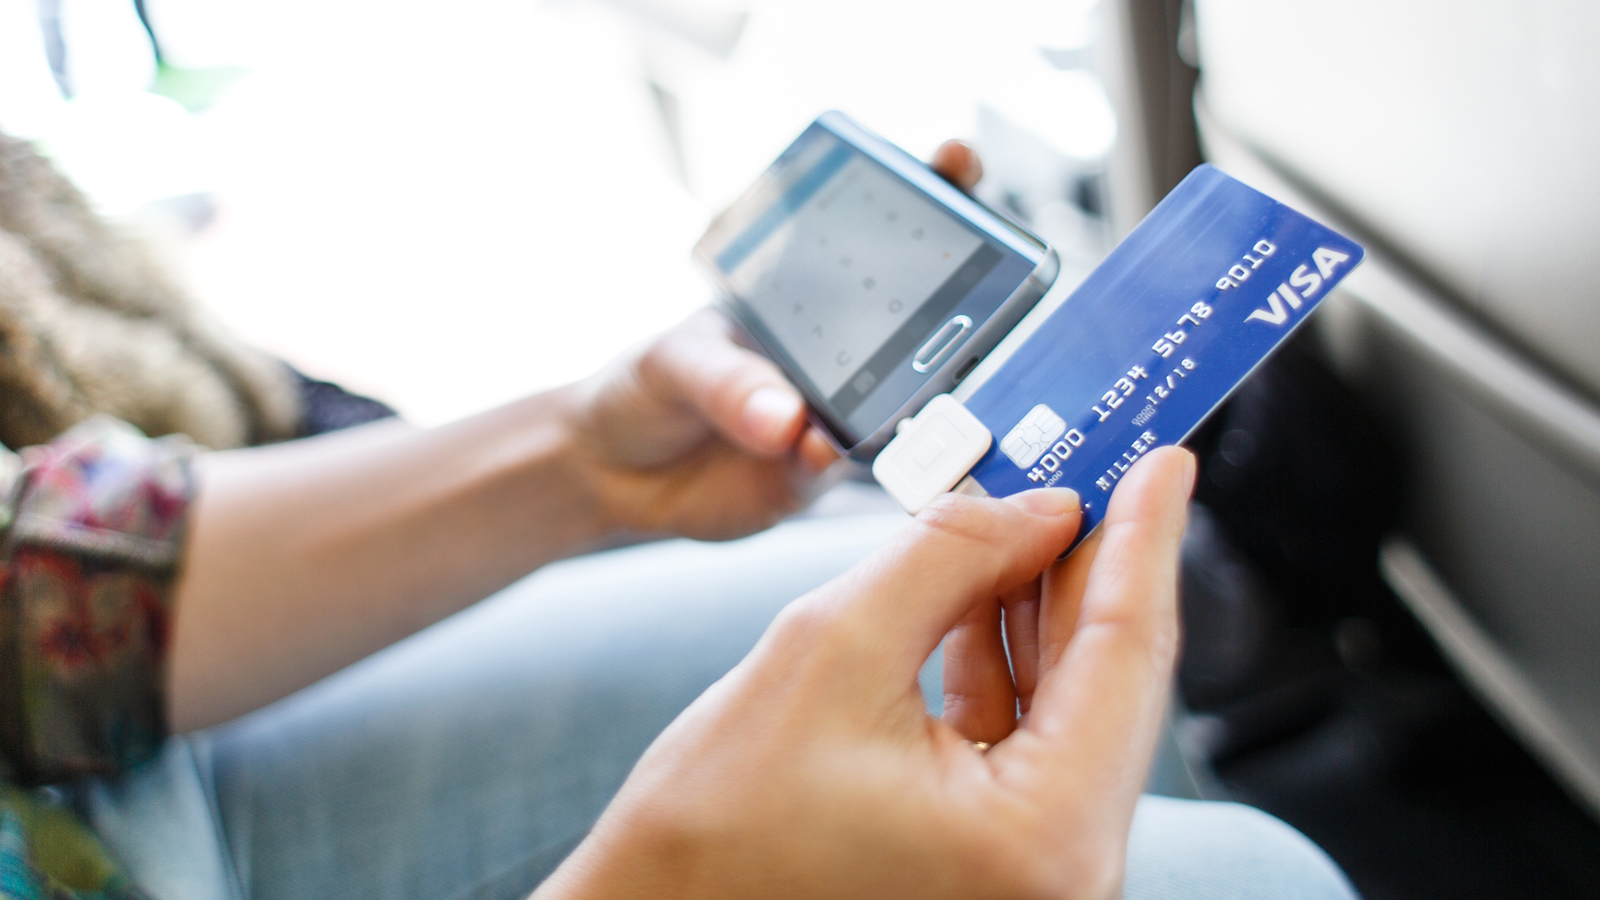 A woman swiping a card in a mobile card reader.